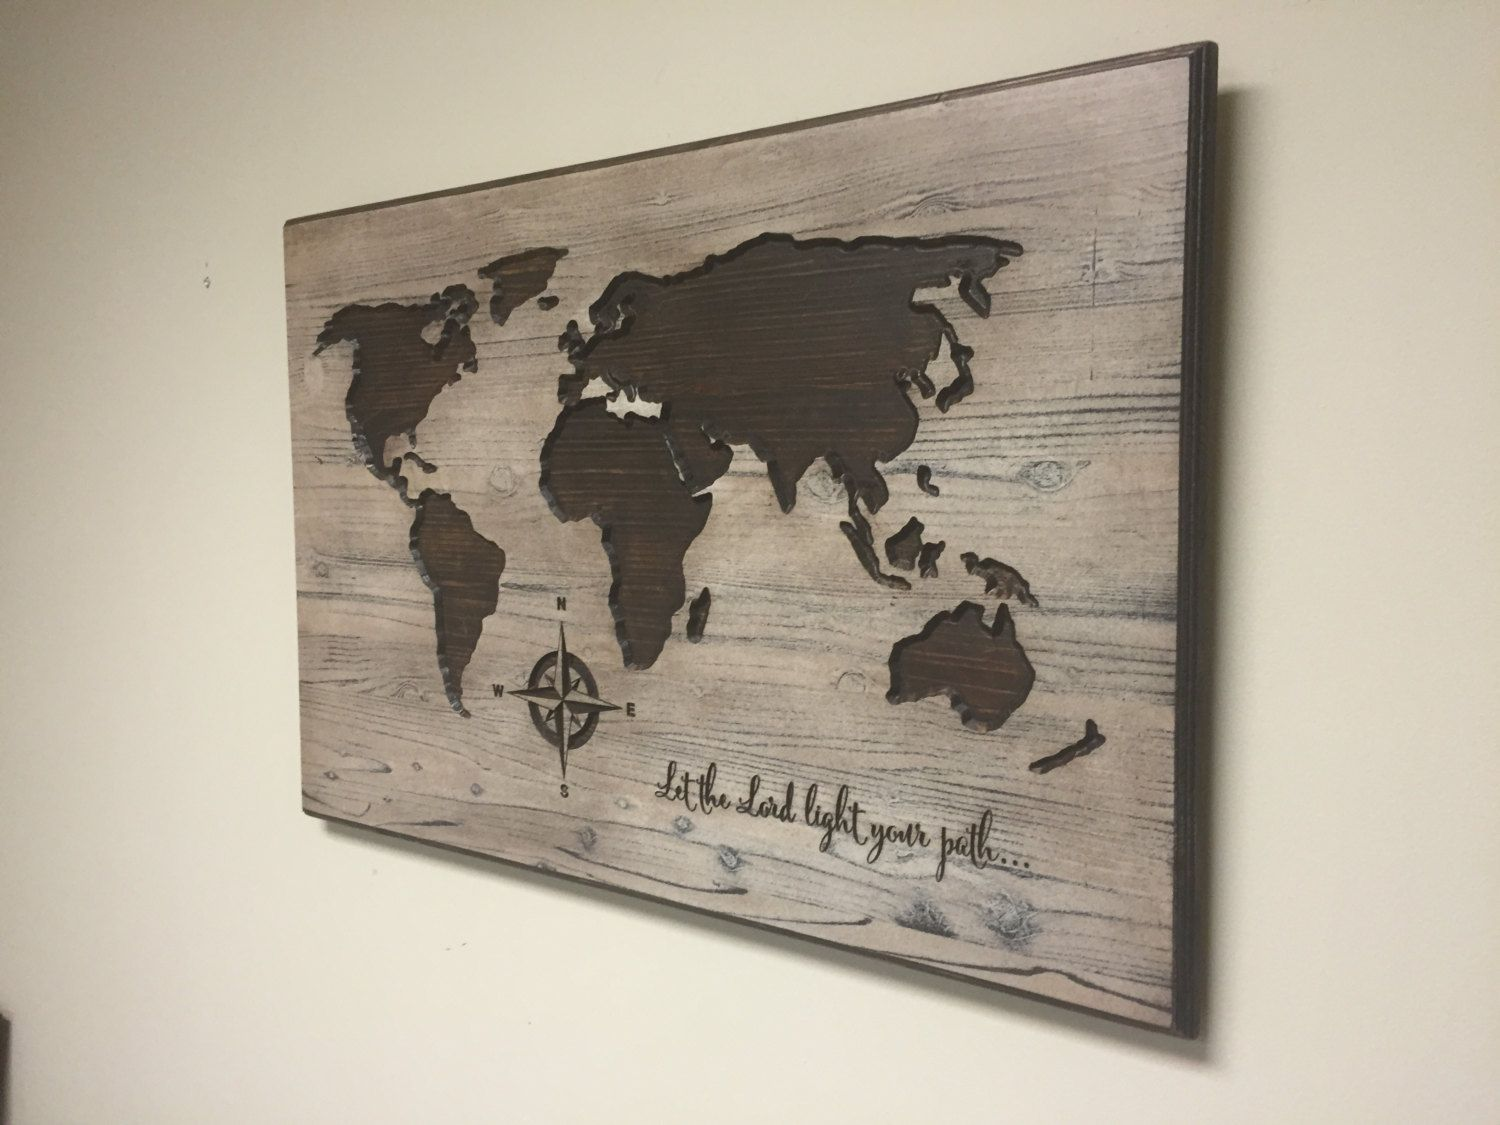 Carved world map wall art, Spiritual, Let the Lord Light your Path, wooden world map, wedding gift, wedding guestbook, housewarming present by HowdyOwl on Etsy